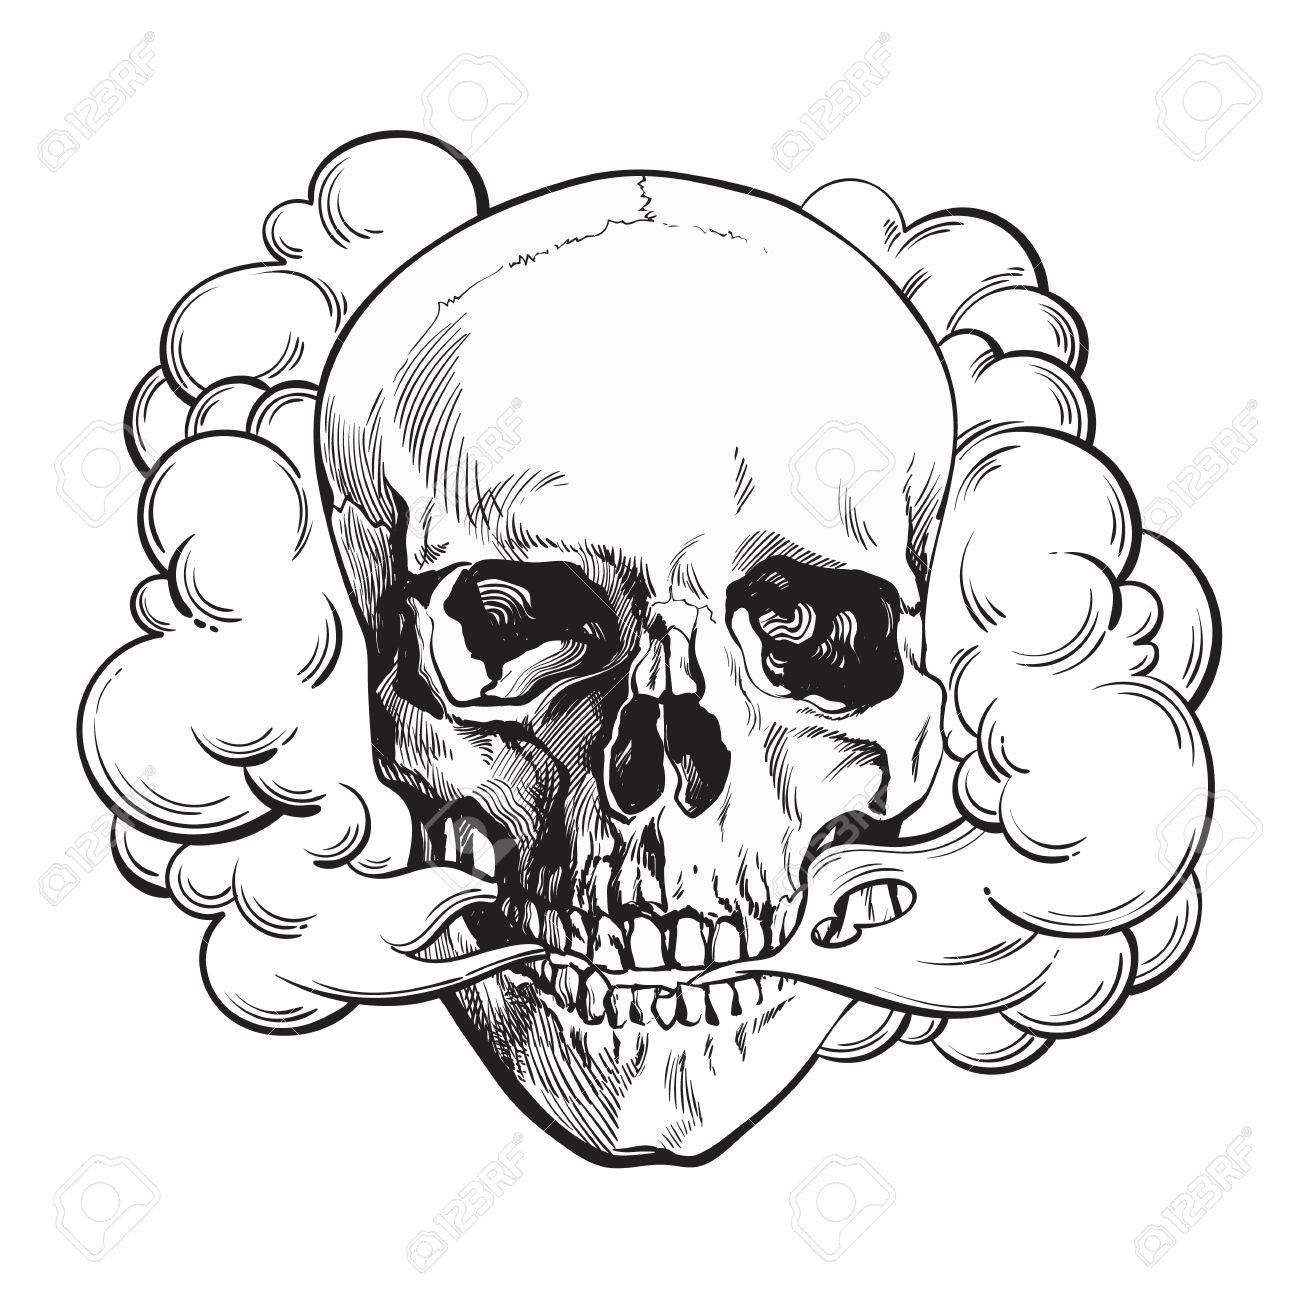 Smoke coming out of fleshless skull death mortal habit concept